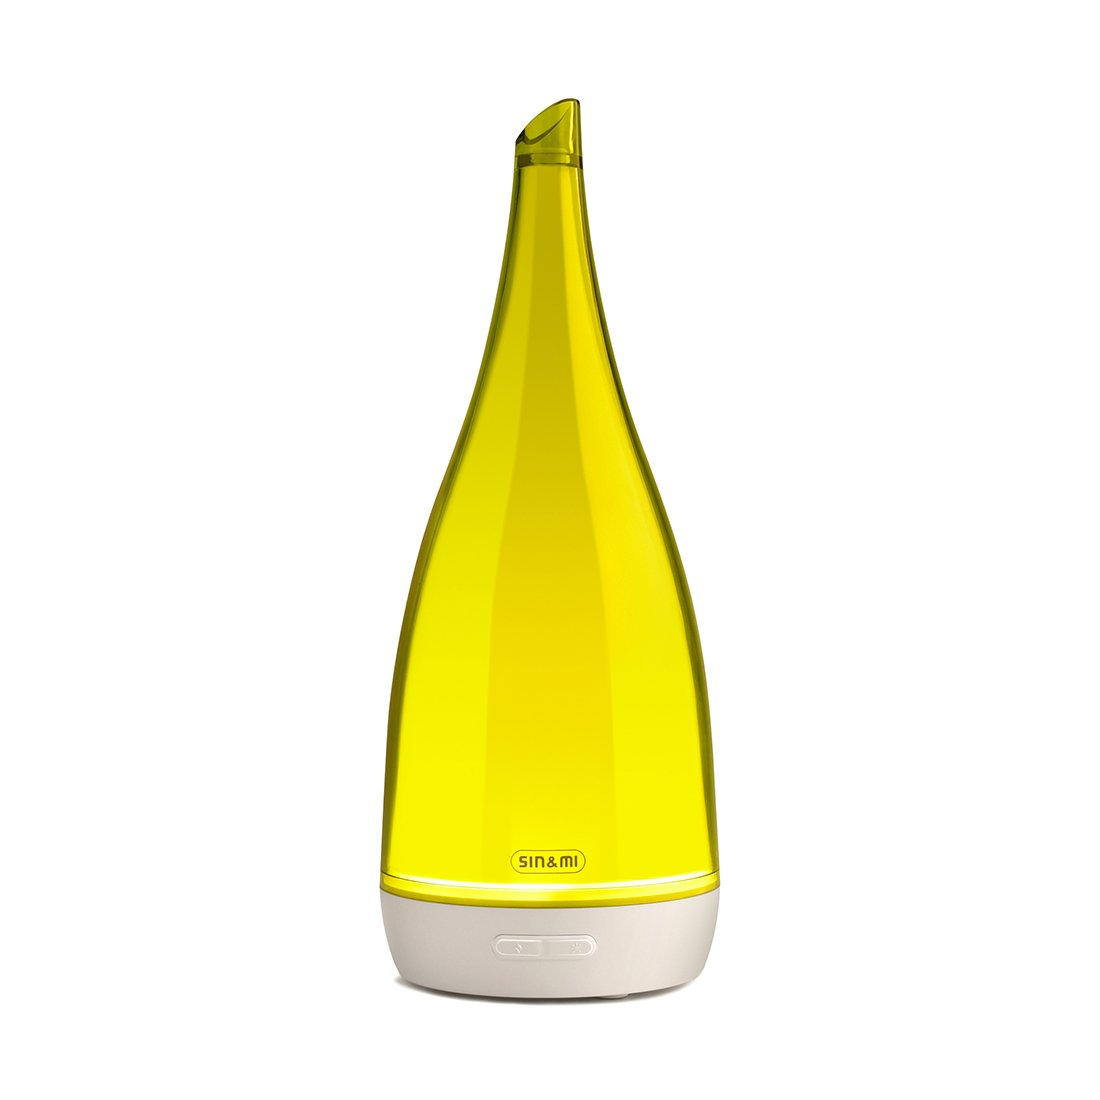 Getek Oil Diffuser, Cool Mist Humidifier Ultrasonic Aroma Essential Oil Diffuser for Office, Home, Bedroom, Baby Room, Yoga, Spa (Light Green)